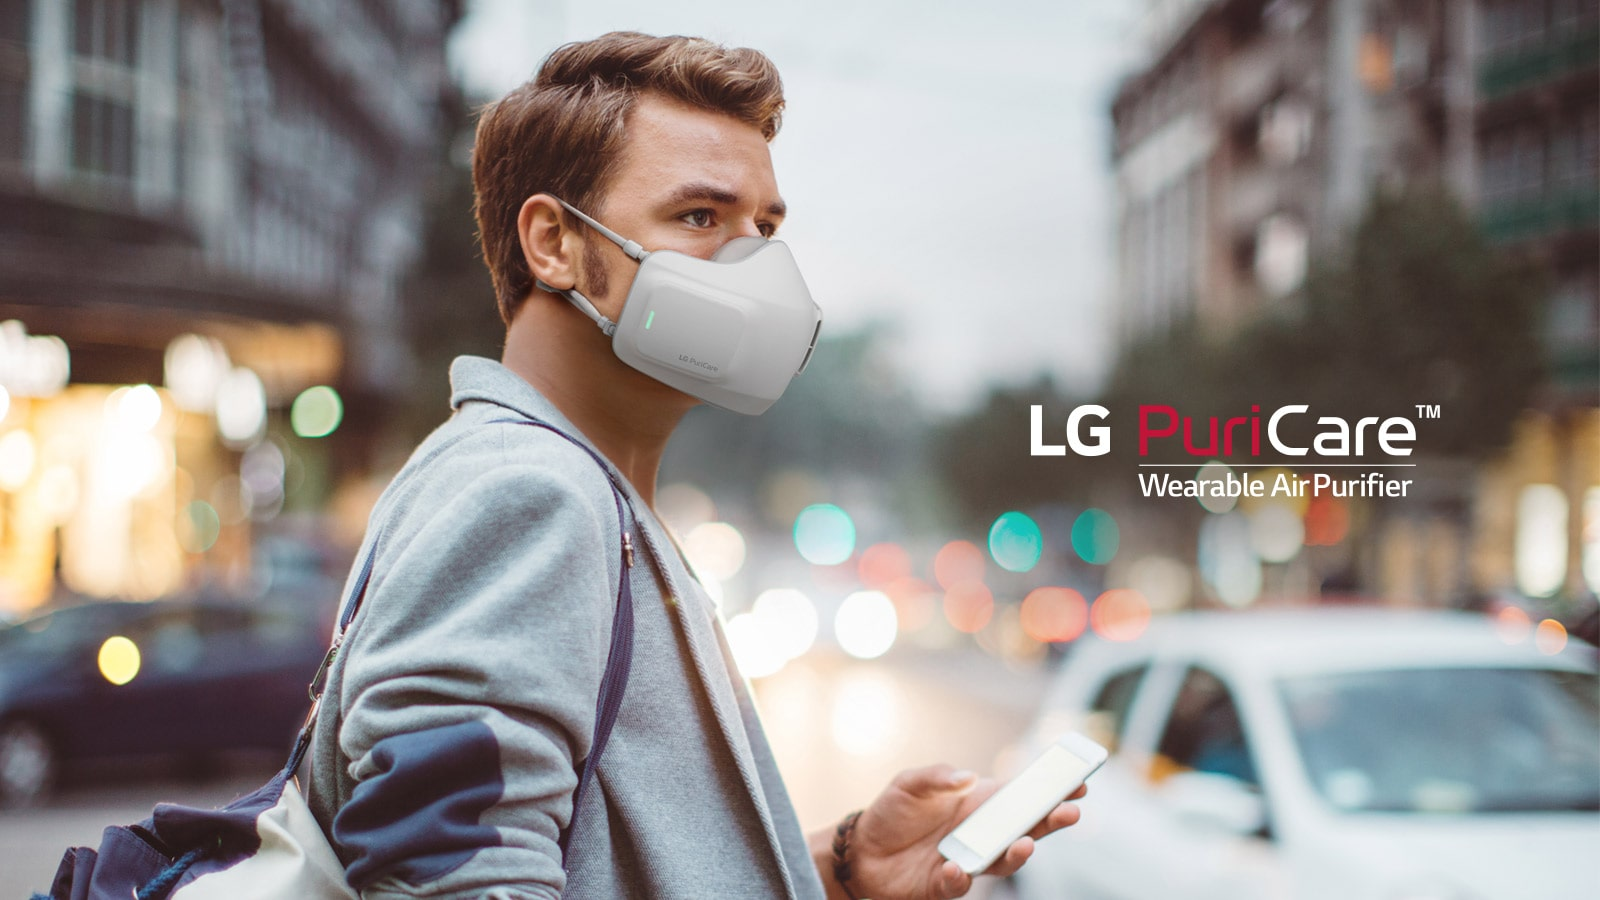 A man stands downtown in a city with the LG Puricare Mask on, holding a phone, and looking around with a blurred city in the background.